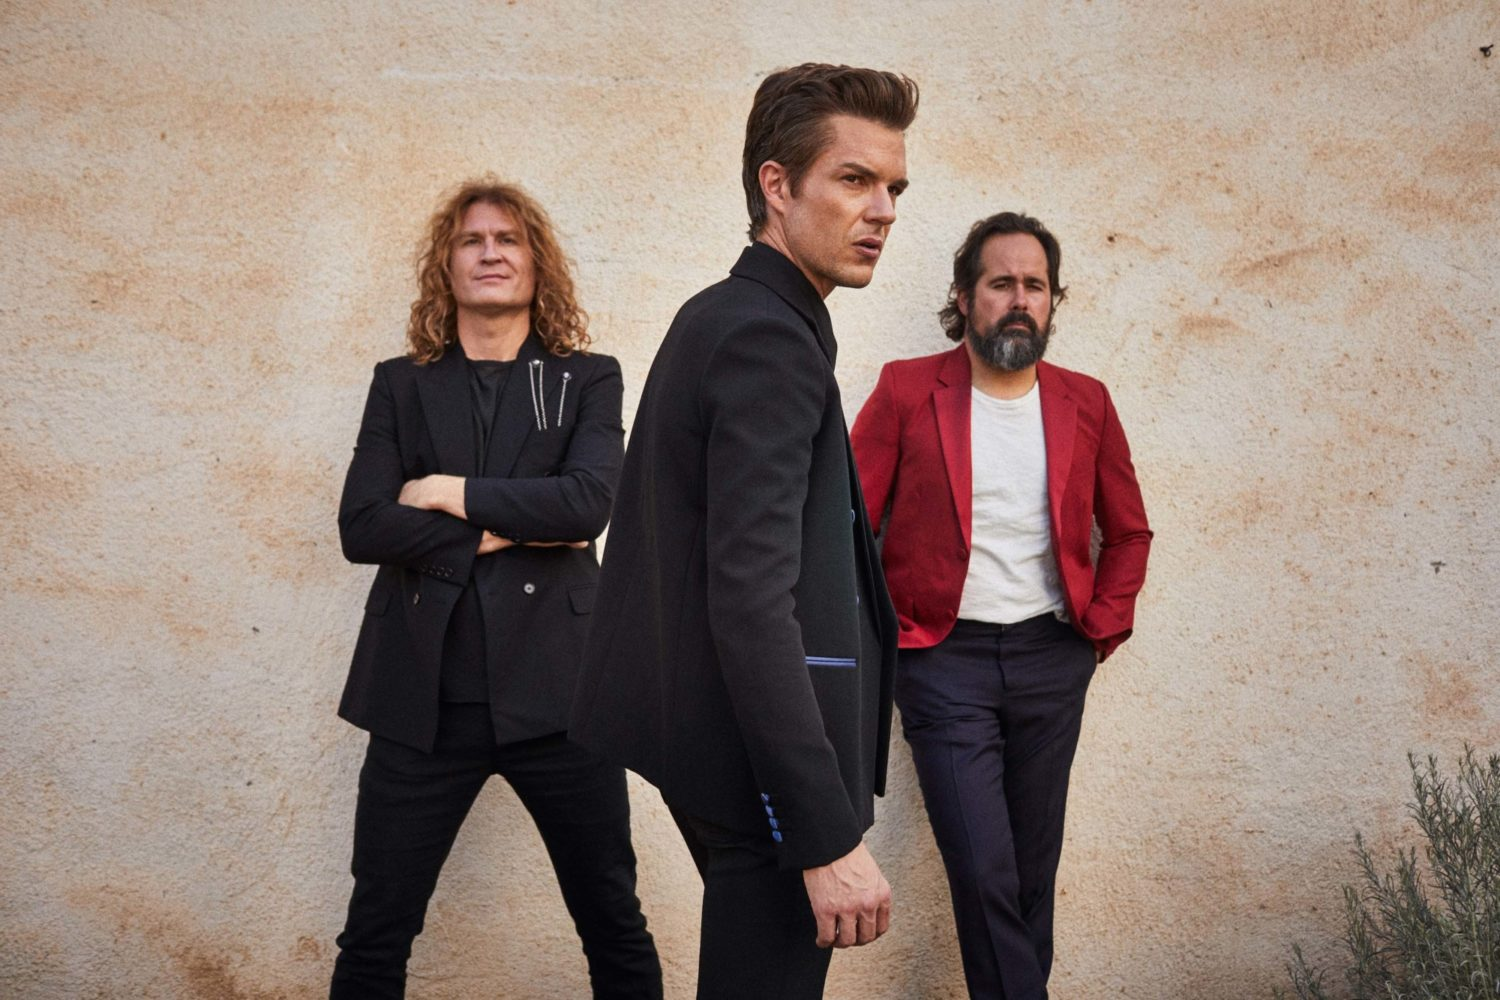 The Killers' Brandon Flowers discusses how the opioid epidemic in America fed into new album 'Pressure Machine'